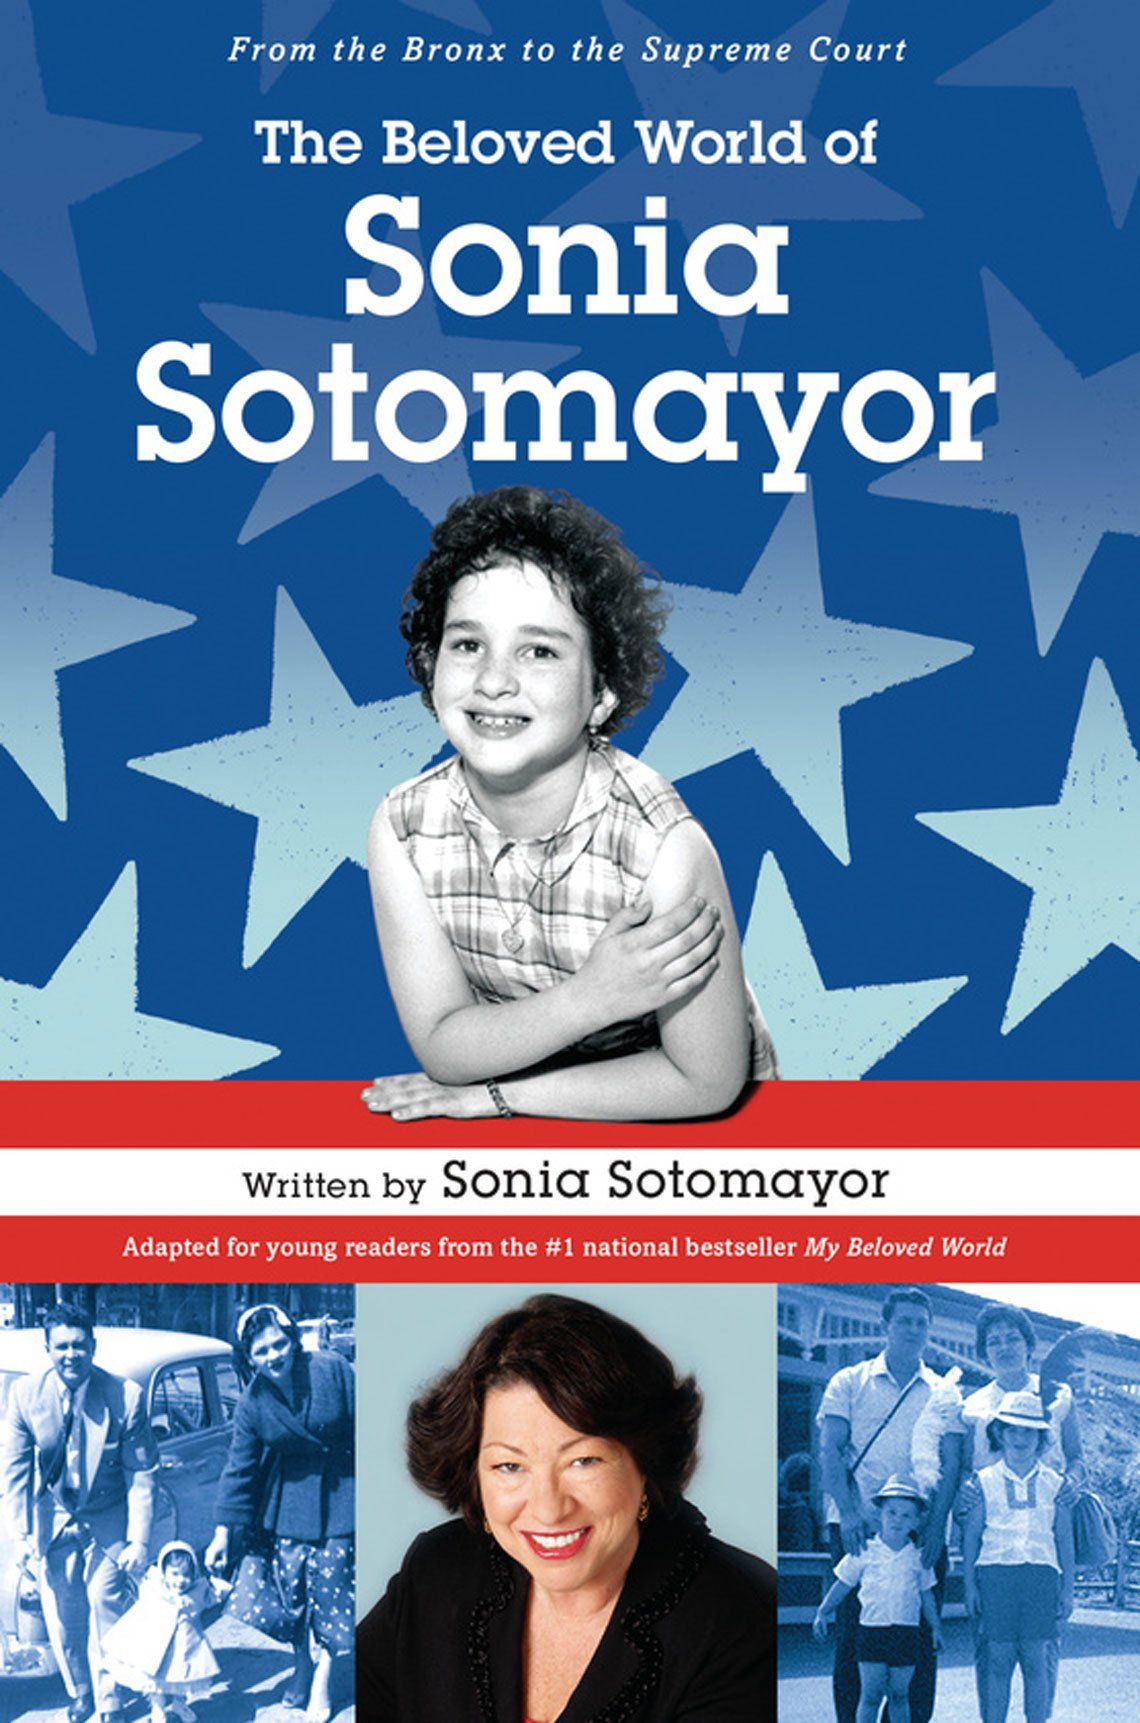 "Carátula del libro de Sonia Sotomayor ""The Beloved World of Sonia Sotomayor""."